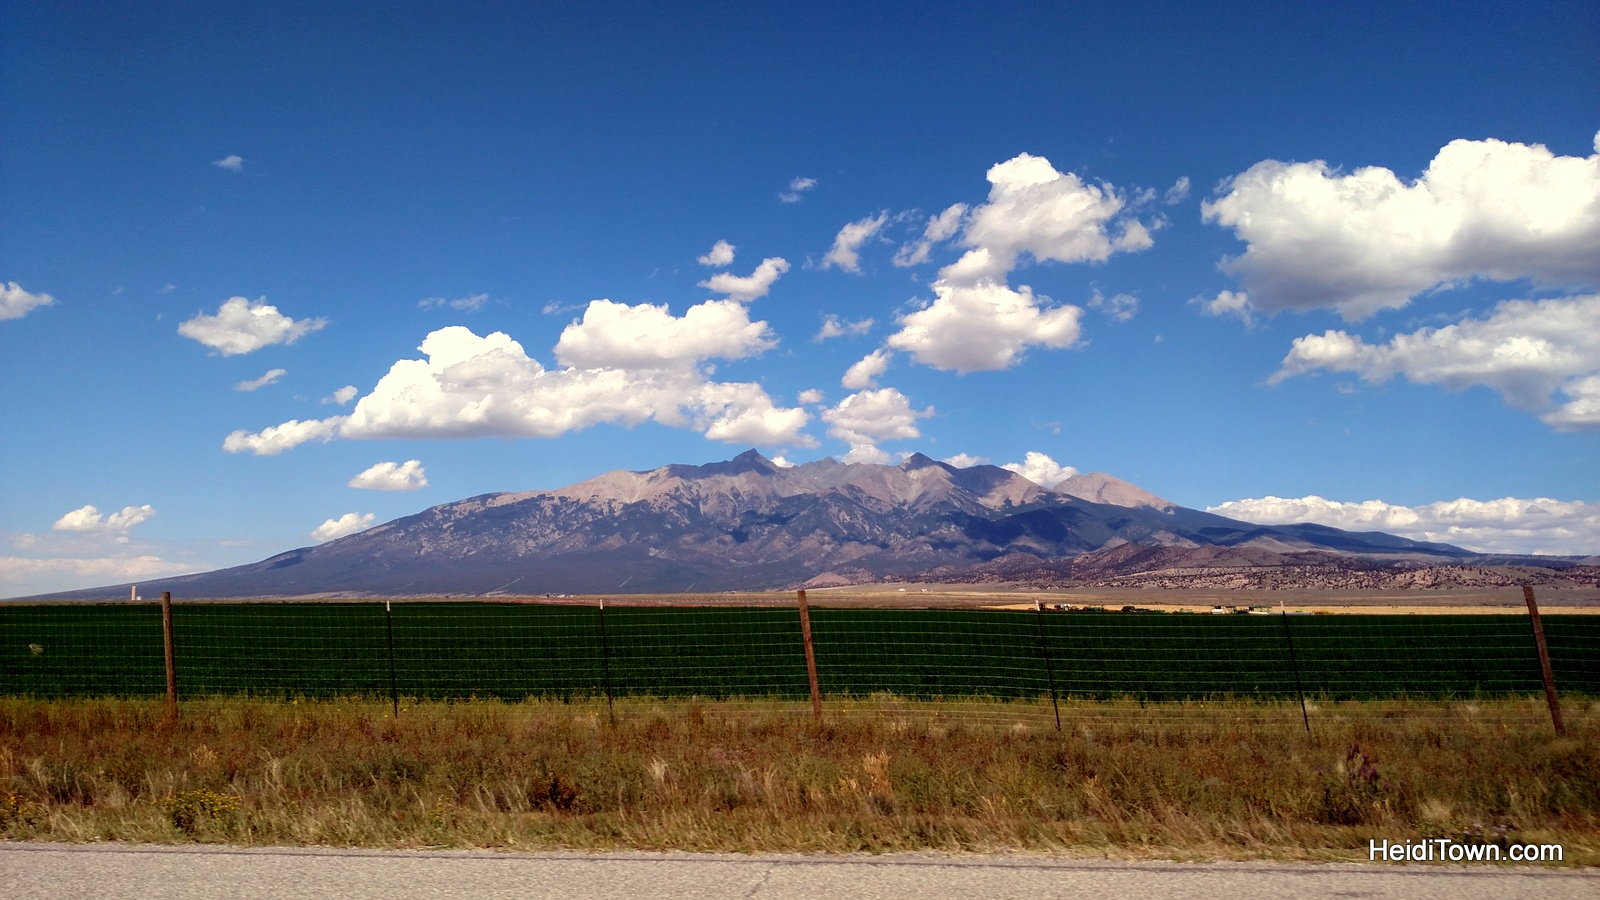 Taking the long way home, #TravelTuesday. Blanca Peak, Colorado. HeidiTown.com